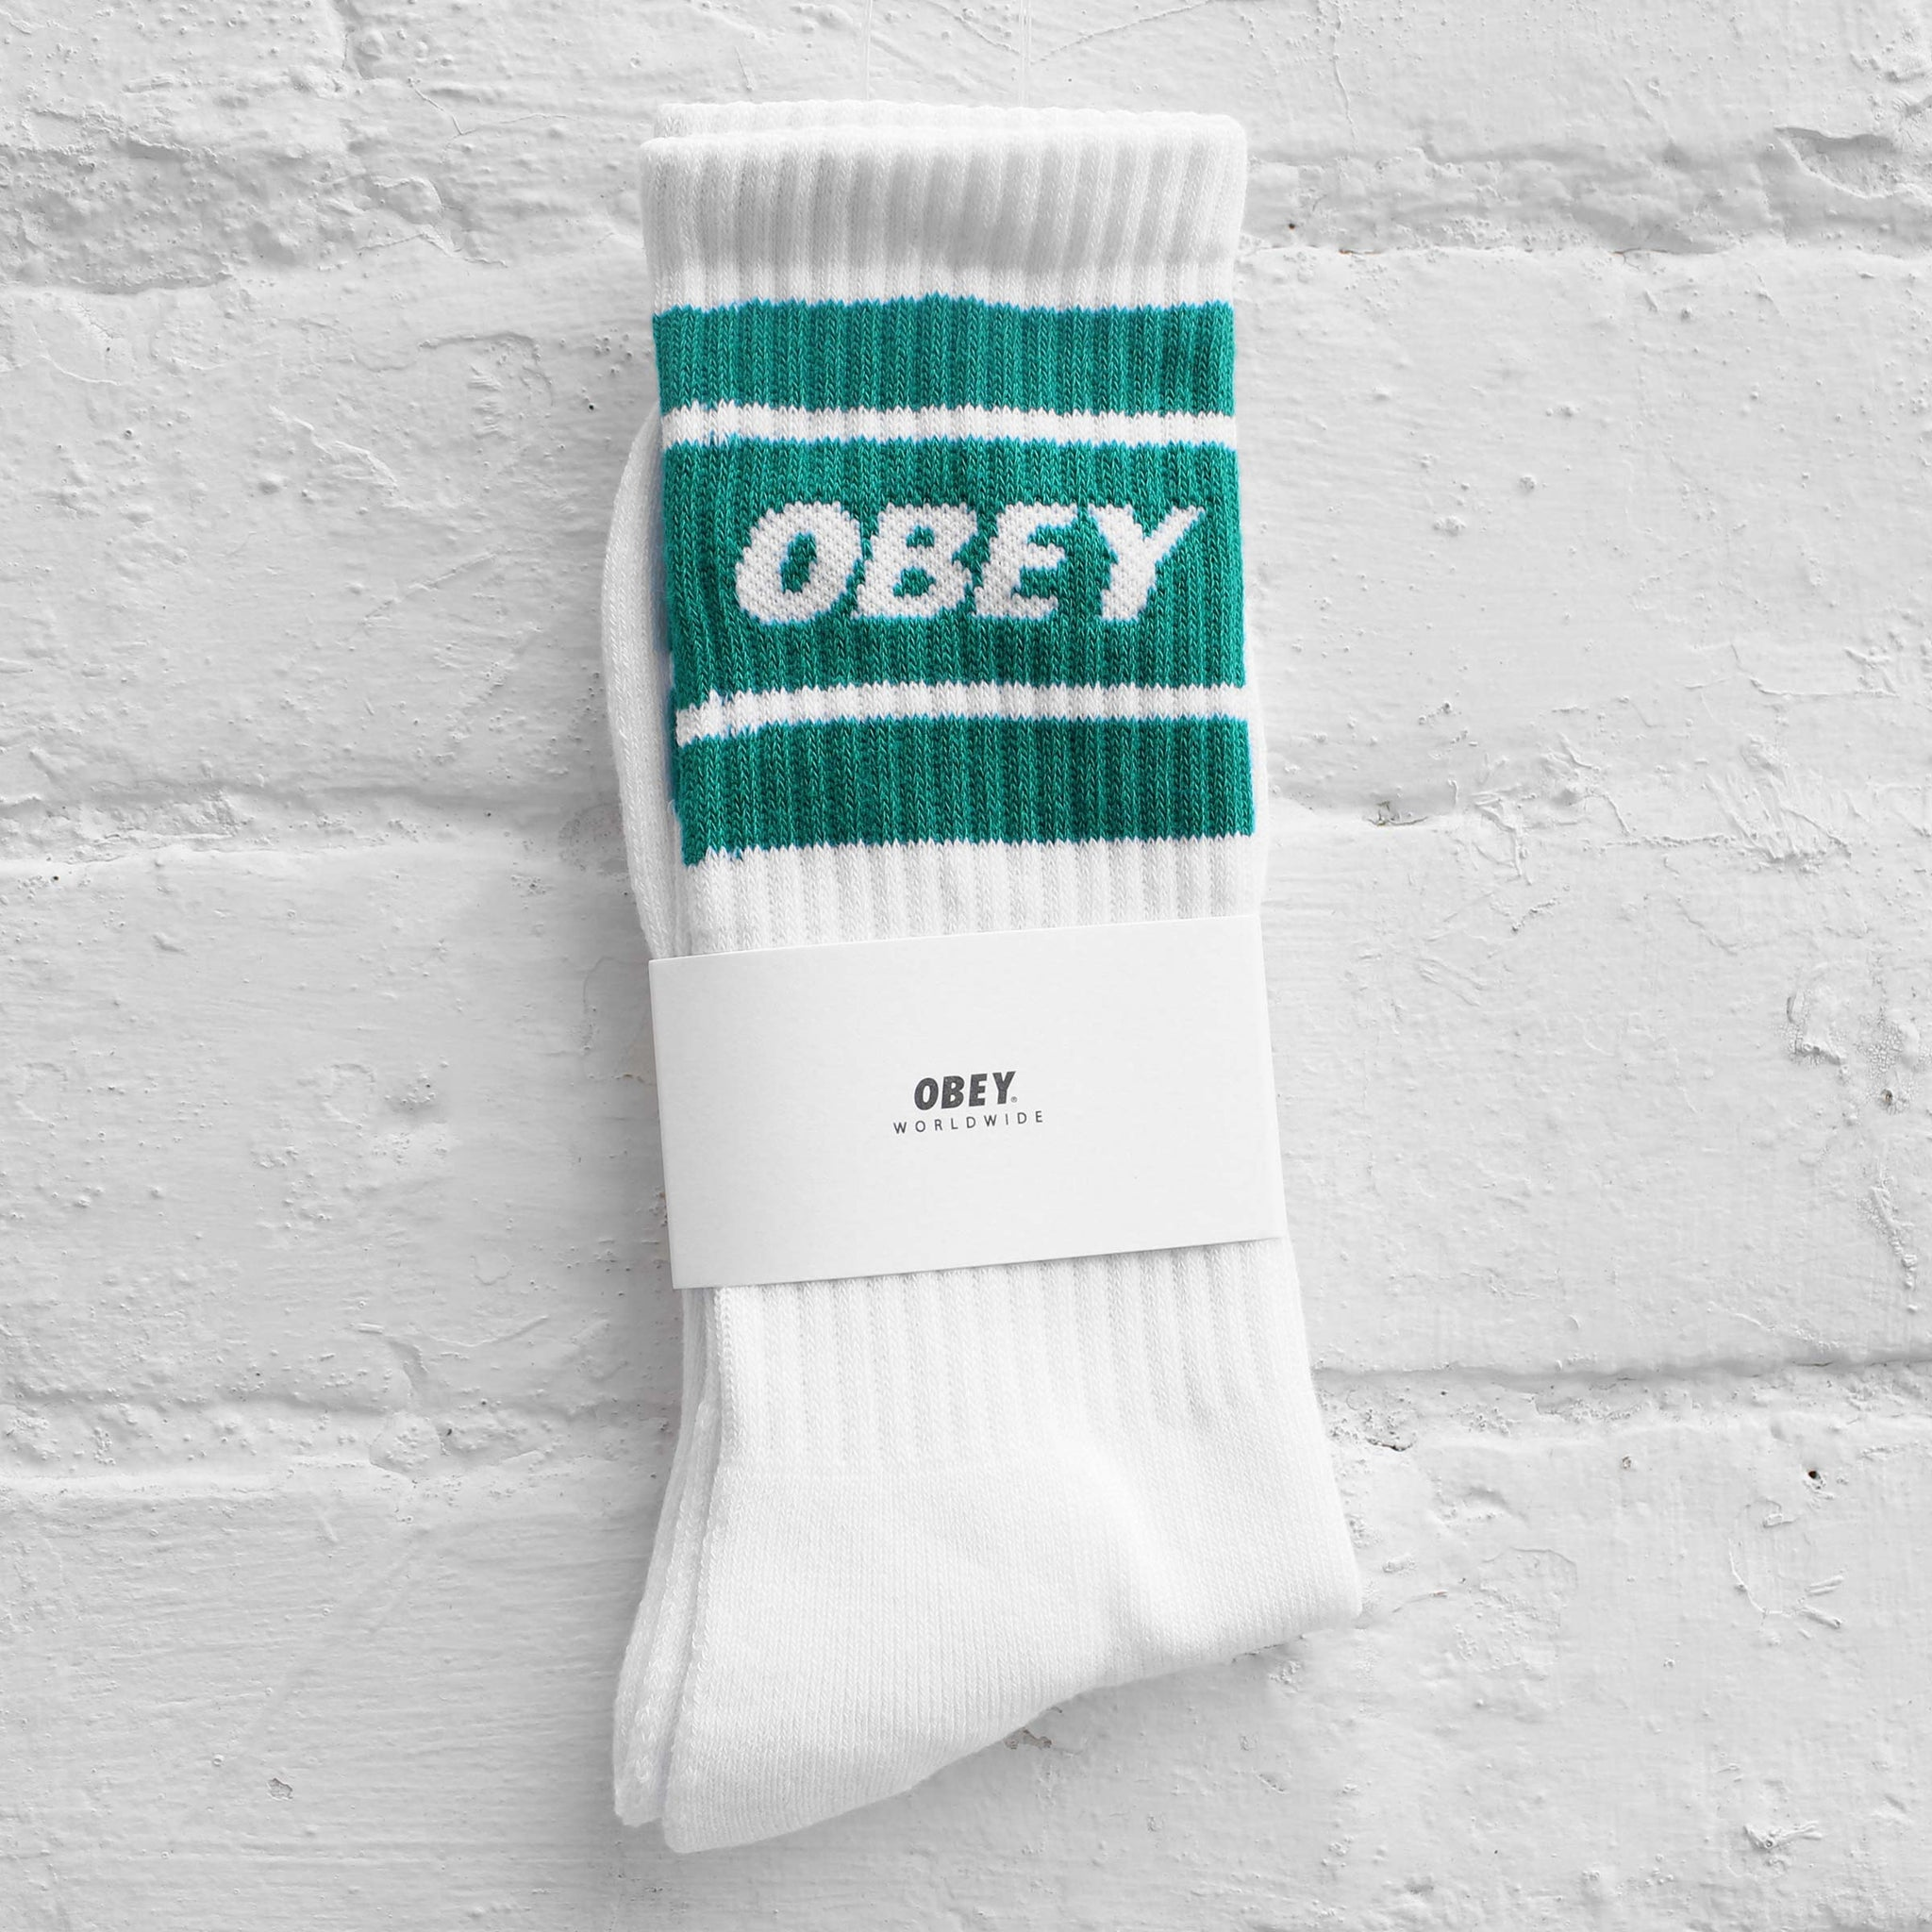 Obey Cooper II Socks  Teal/White